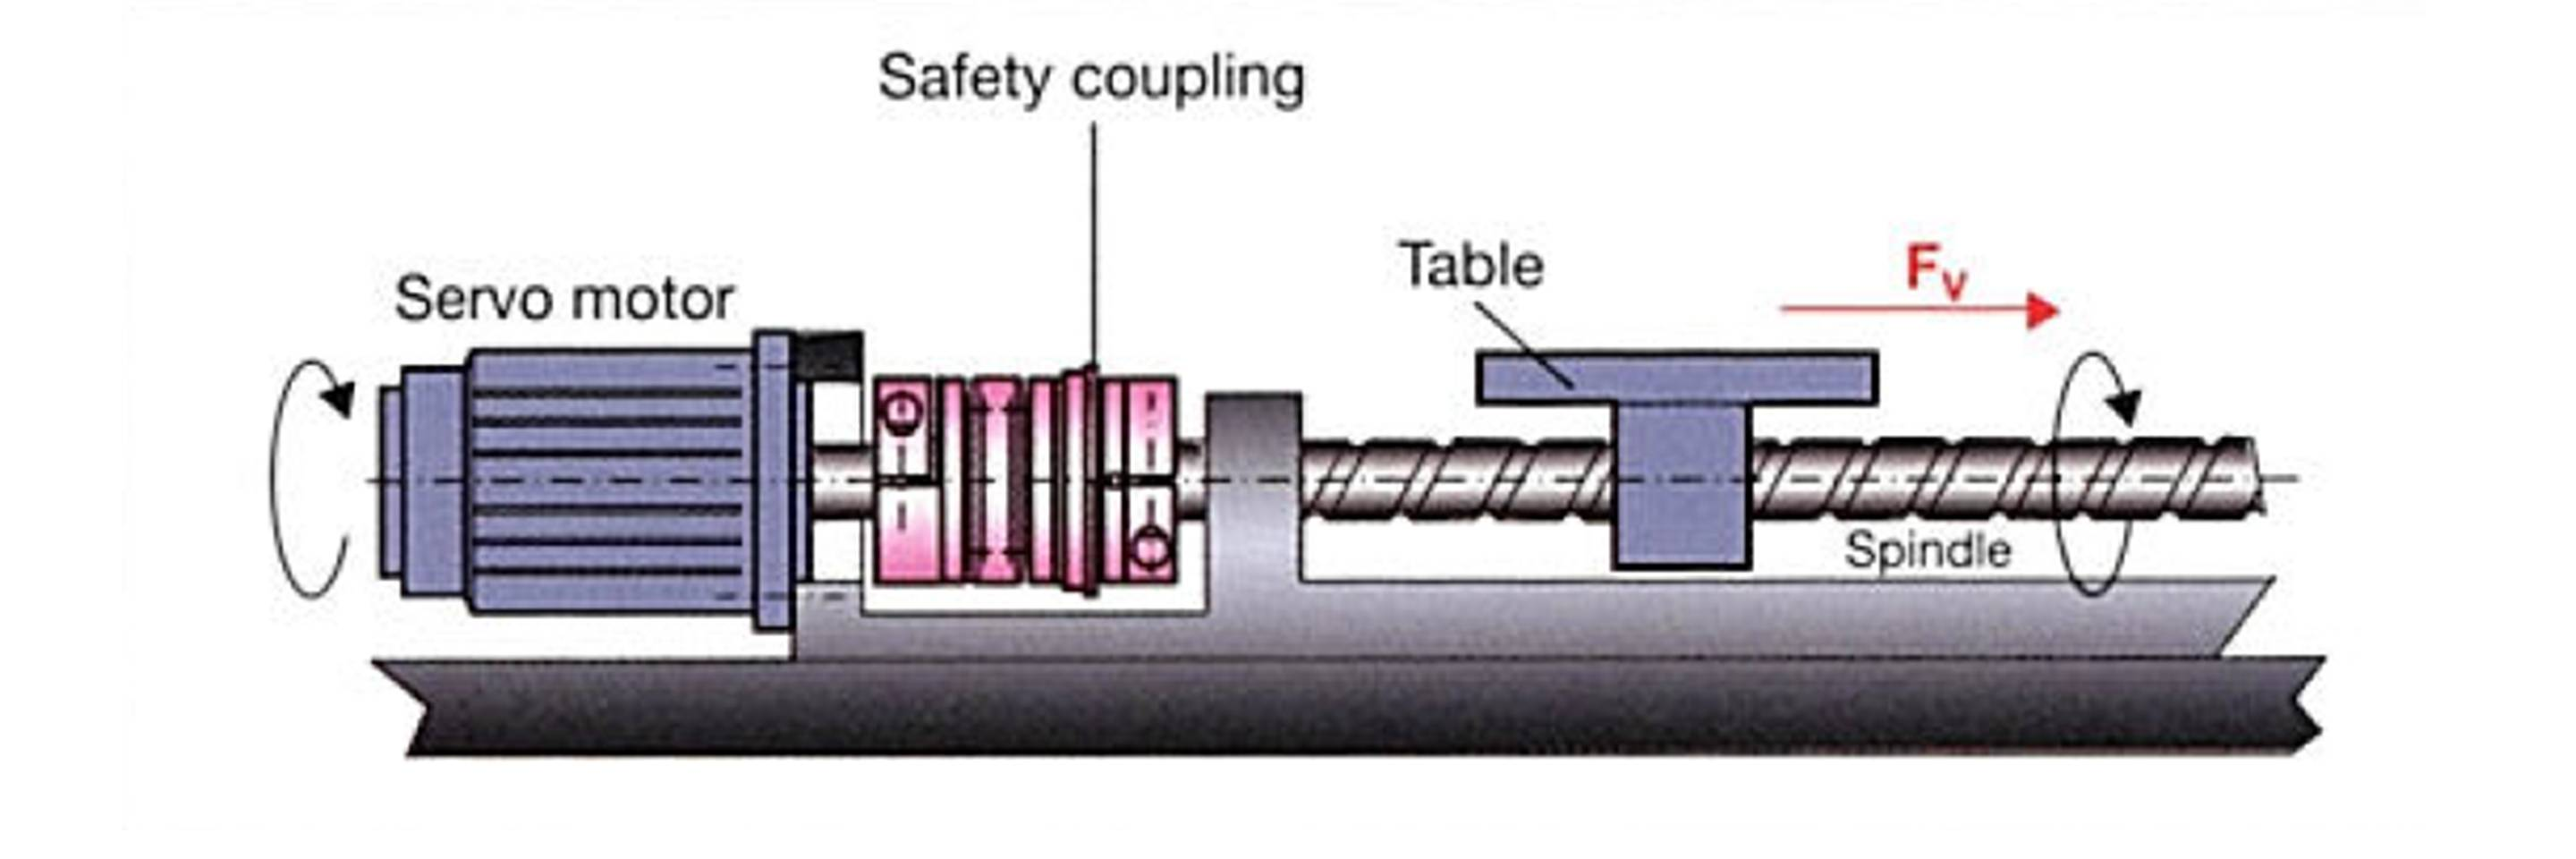 linear servo drive with safety coupling